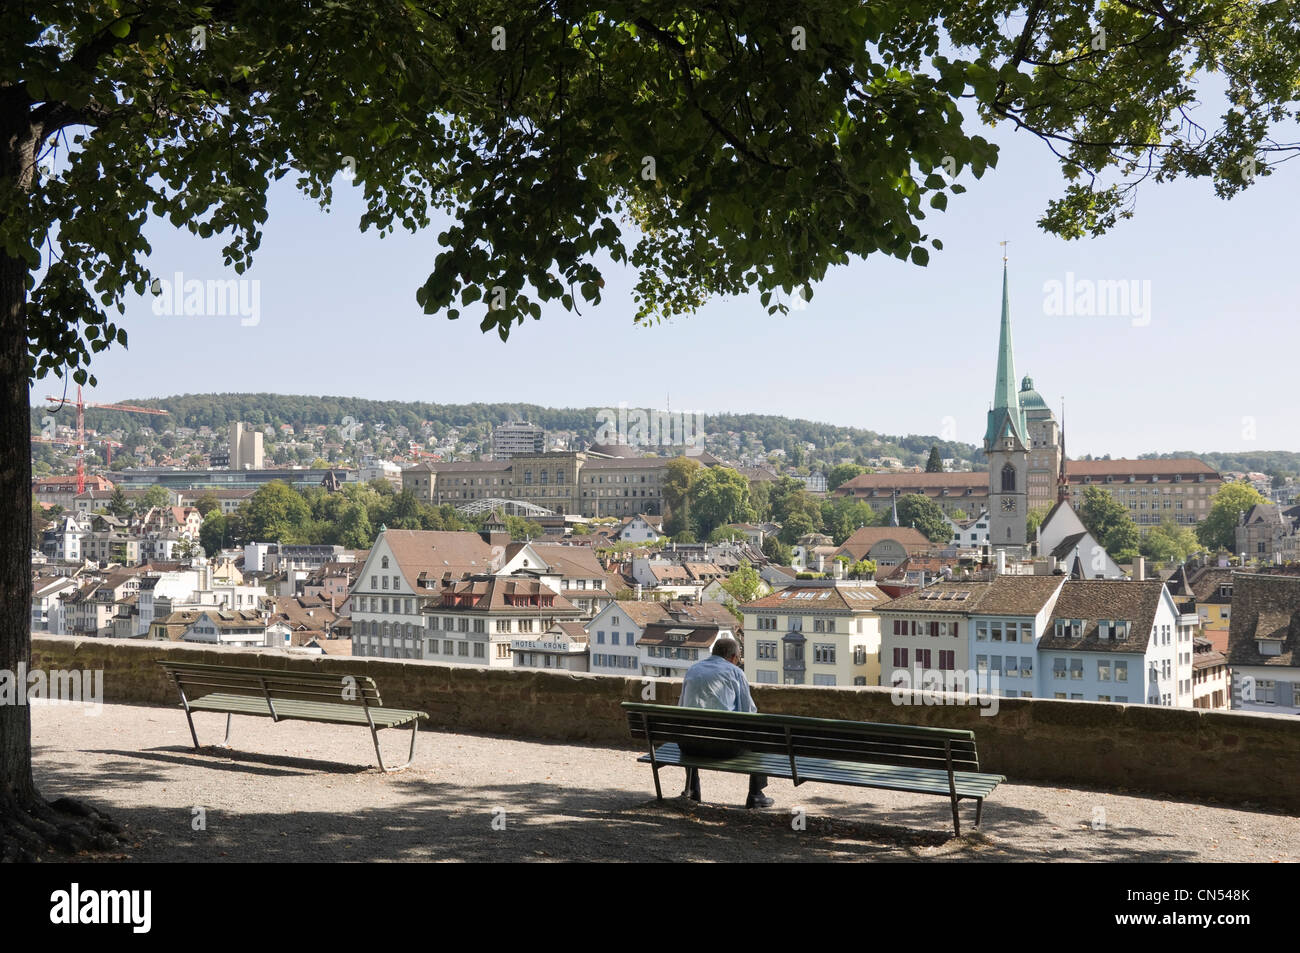 Horizontal wide angle of the view from Lindenhof hill with Predigerkirche, Preachers Church spire prominent on the - Stock Image